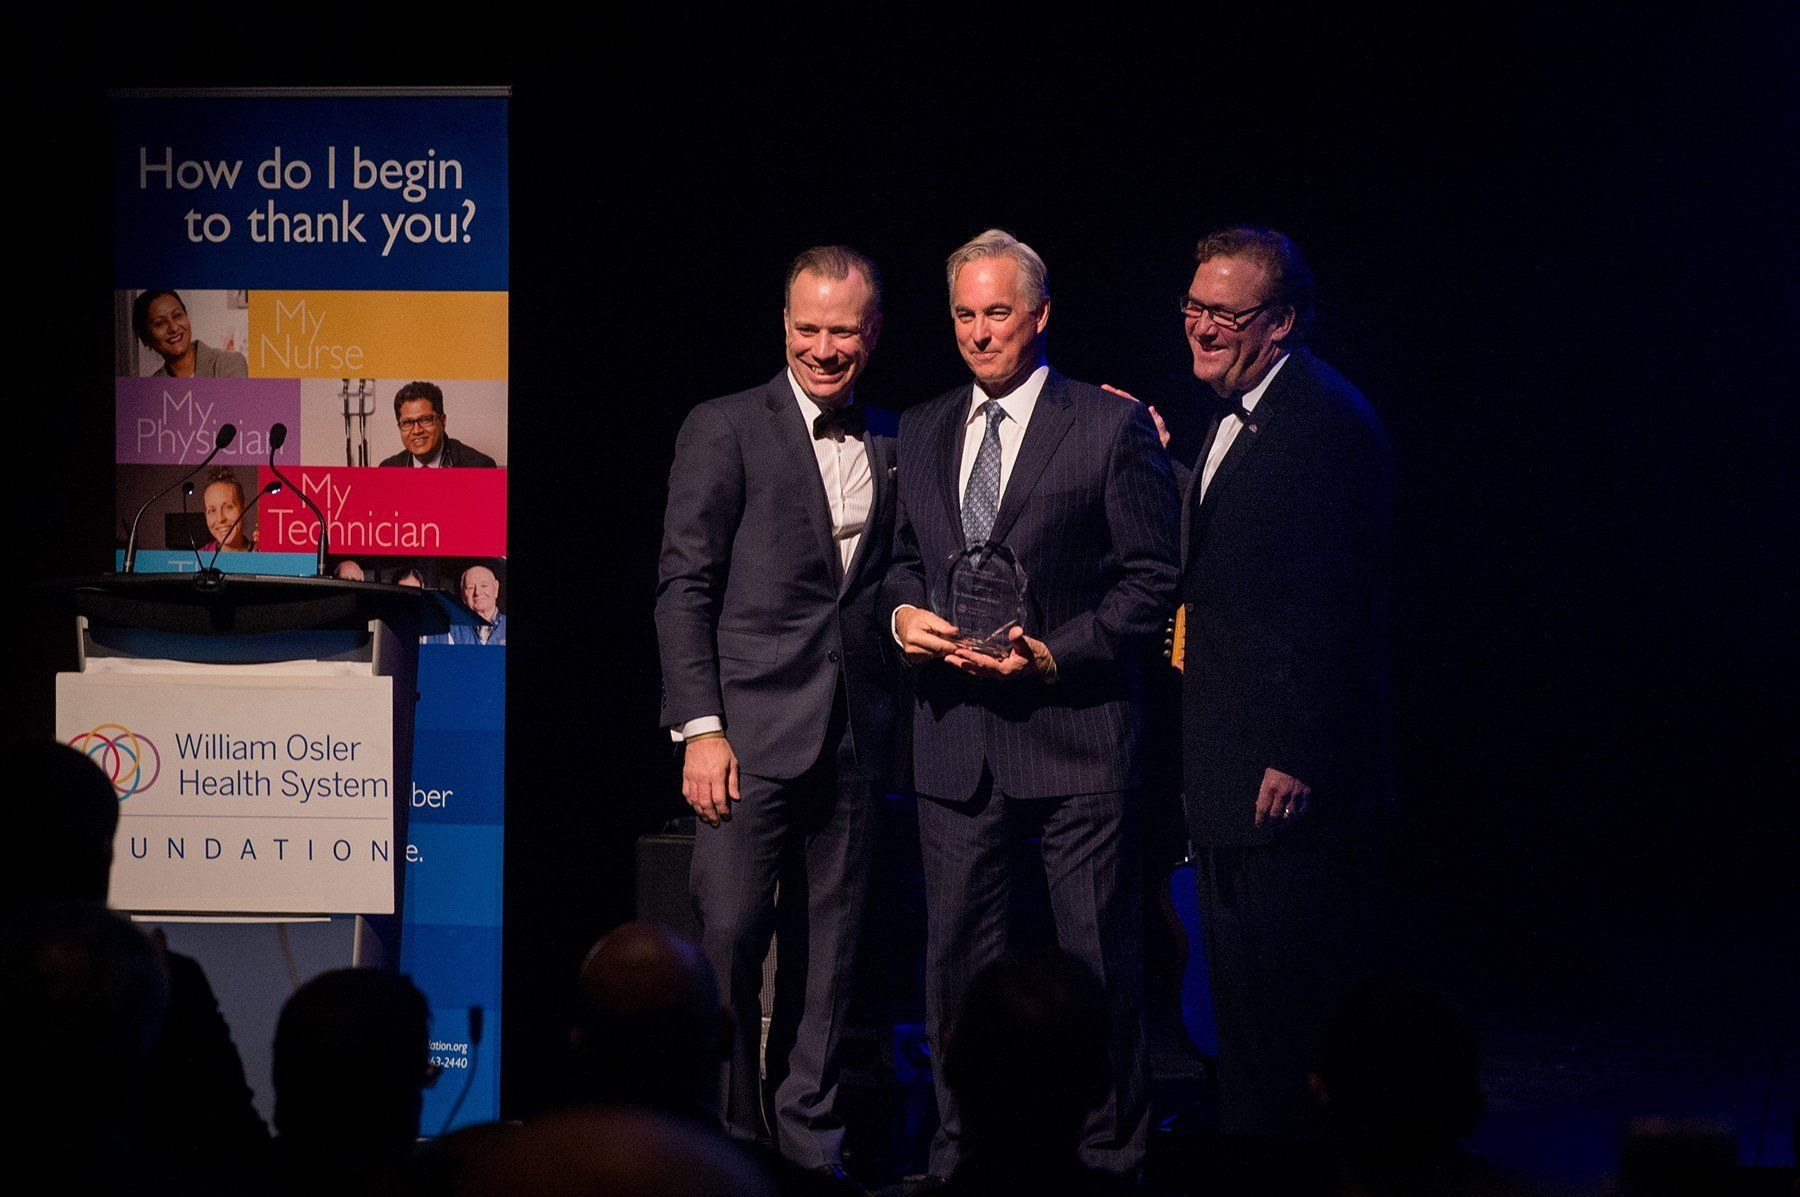 Ken Mayhew (right), president and CEO of William Osler Health System Foundation, presents John Esplen (centre), president and owner of Humberview Group, with Osler Foundation's Corporate Philanthropy Award in 2018 alongside Darren Steedman, vice-president, DG Group (left).